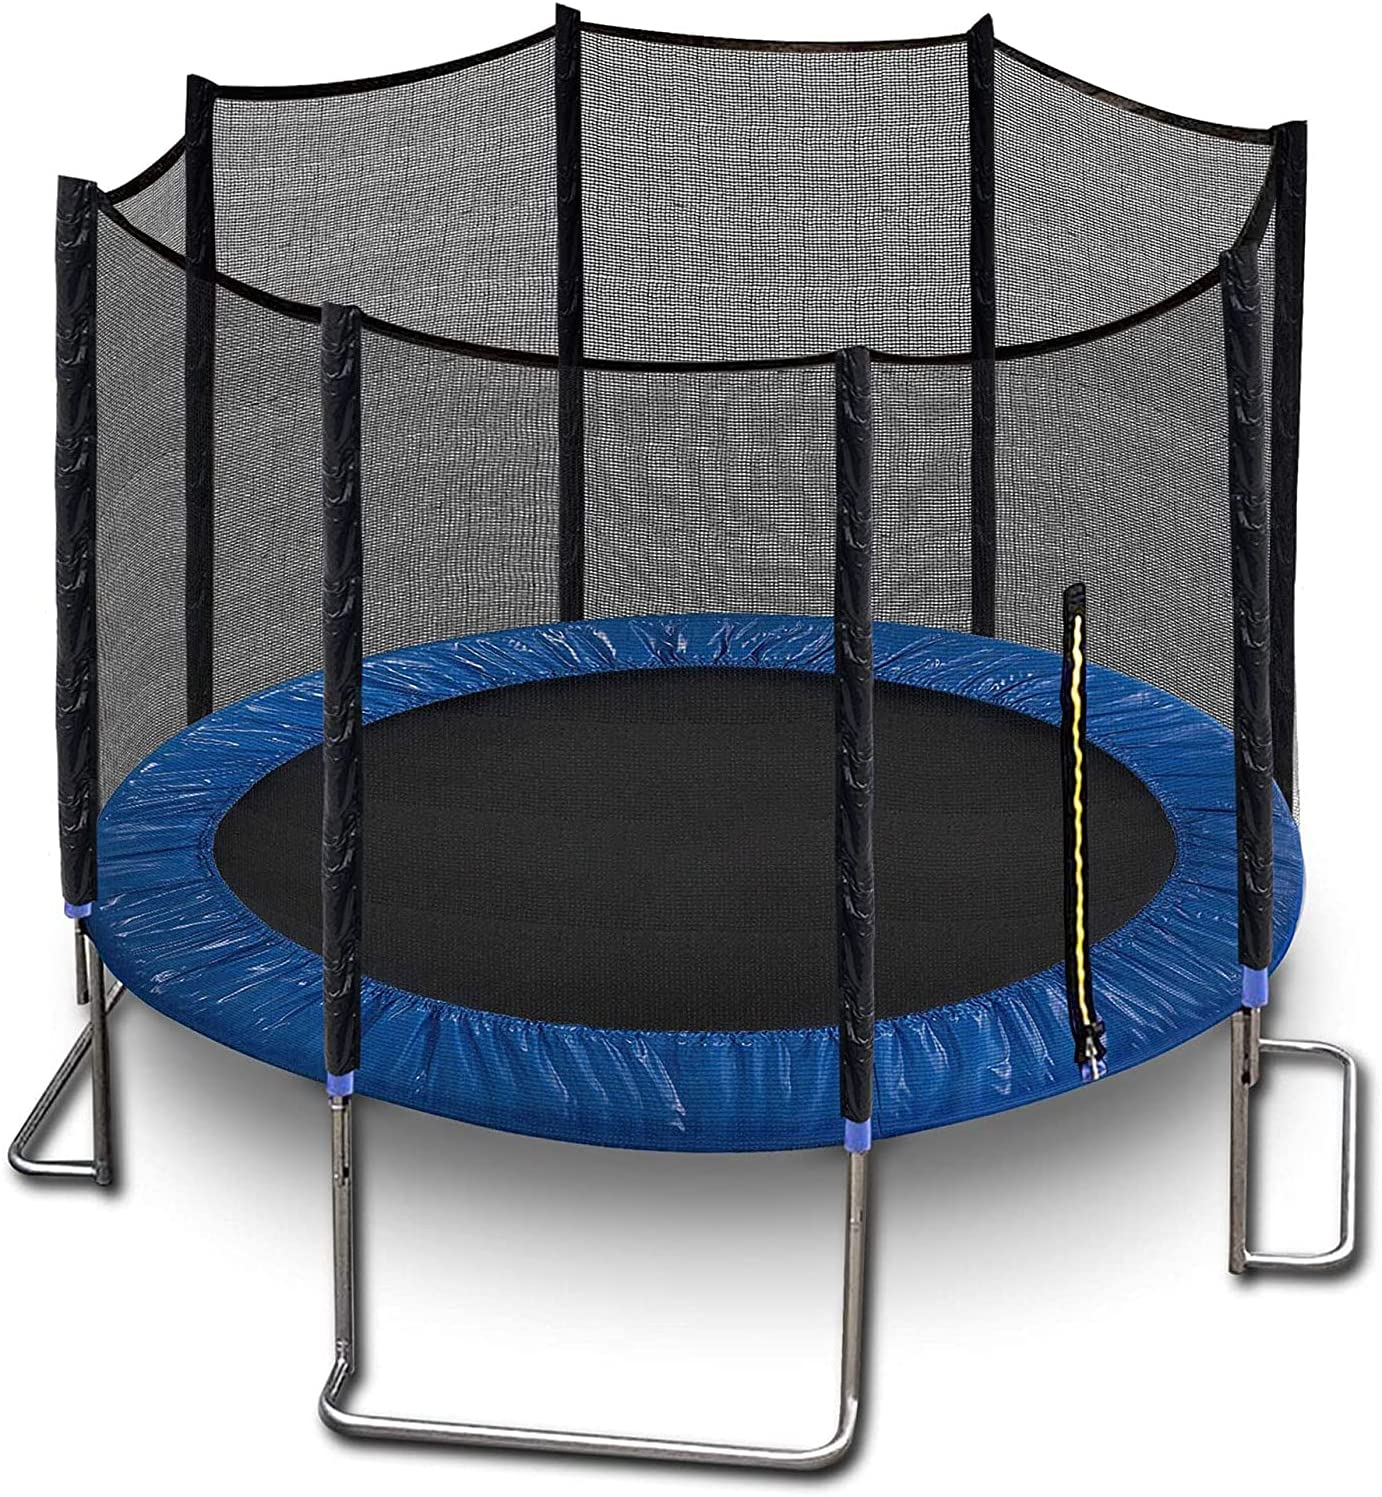 Arlington Mall Trampoline Safety Sales of SALE items from new works Net Breathable Guar Protection Tear